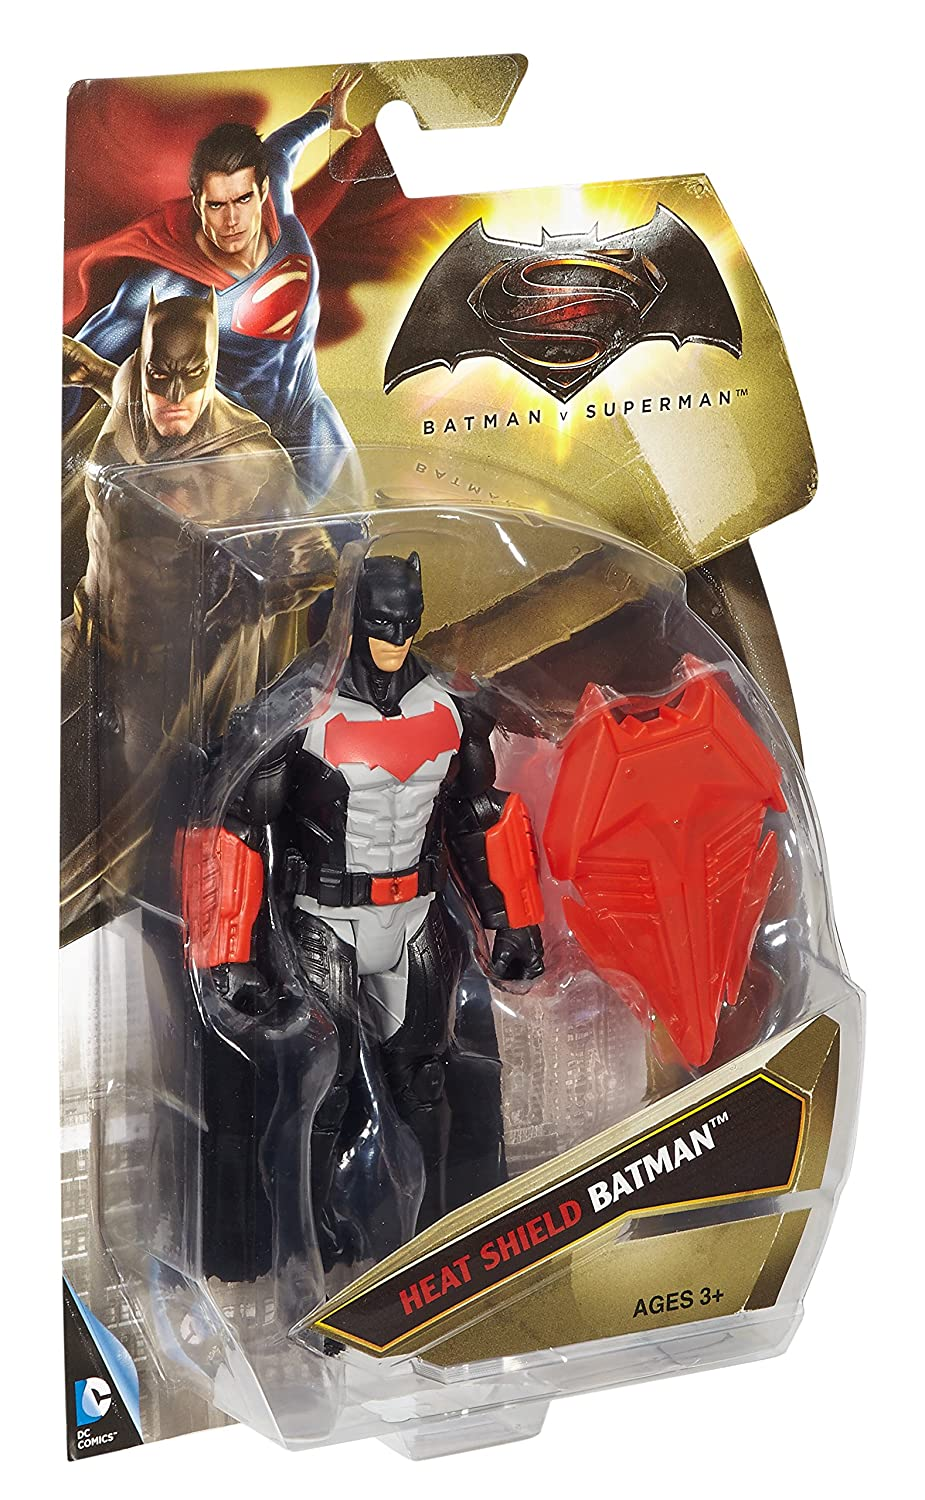 Batman v Superman Dawn of Justice Heat Shield Batman 6 Figure